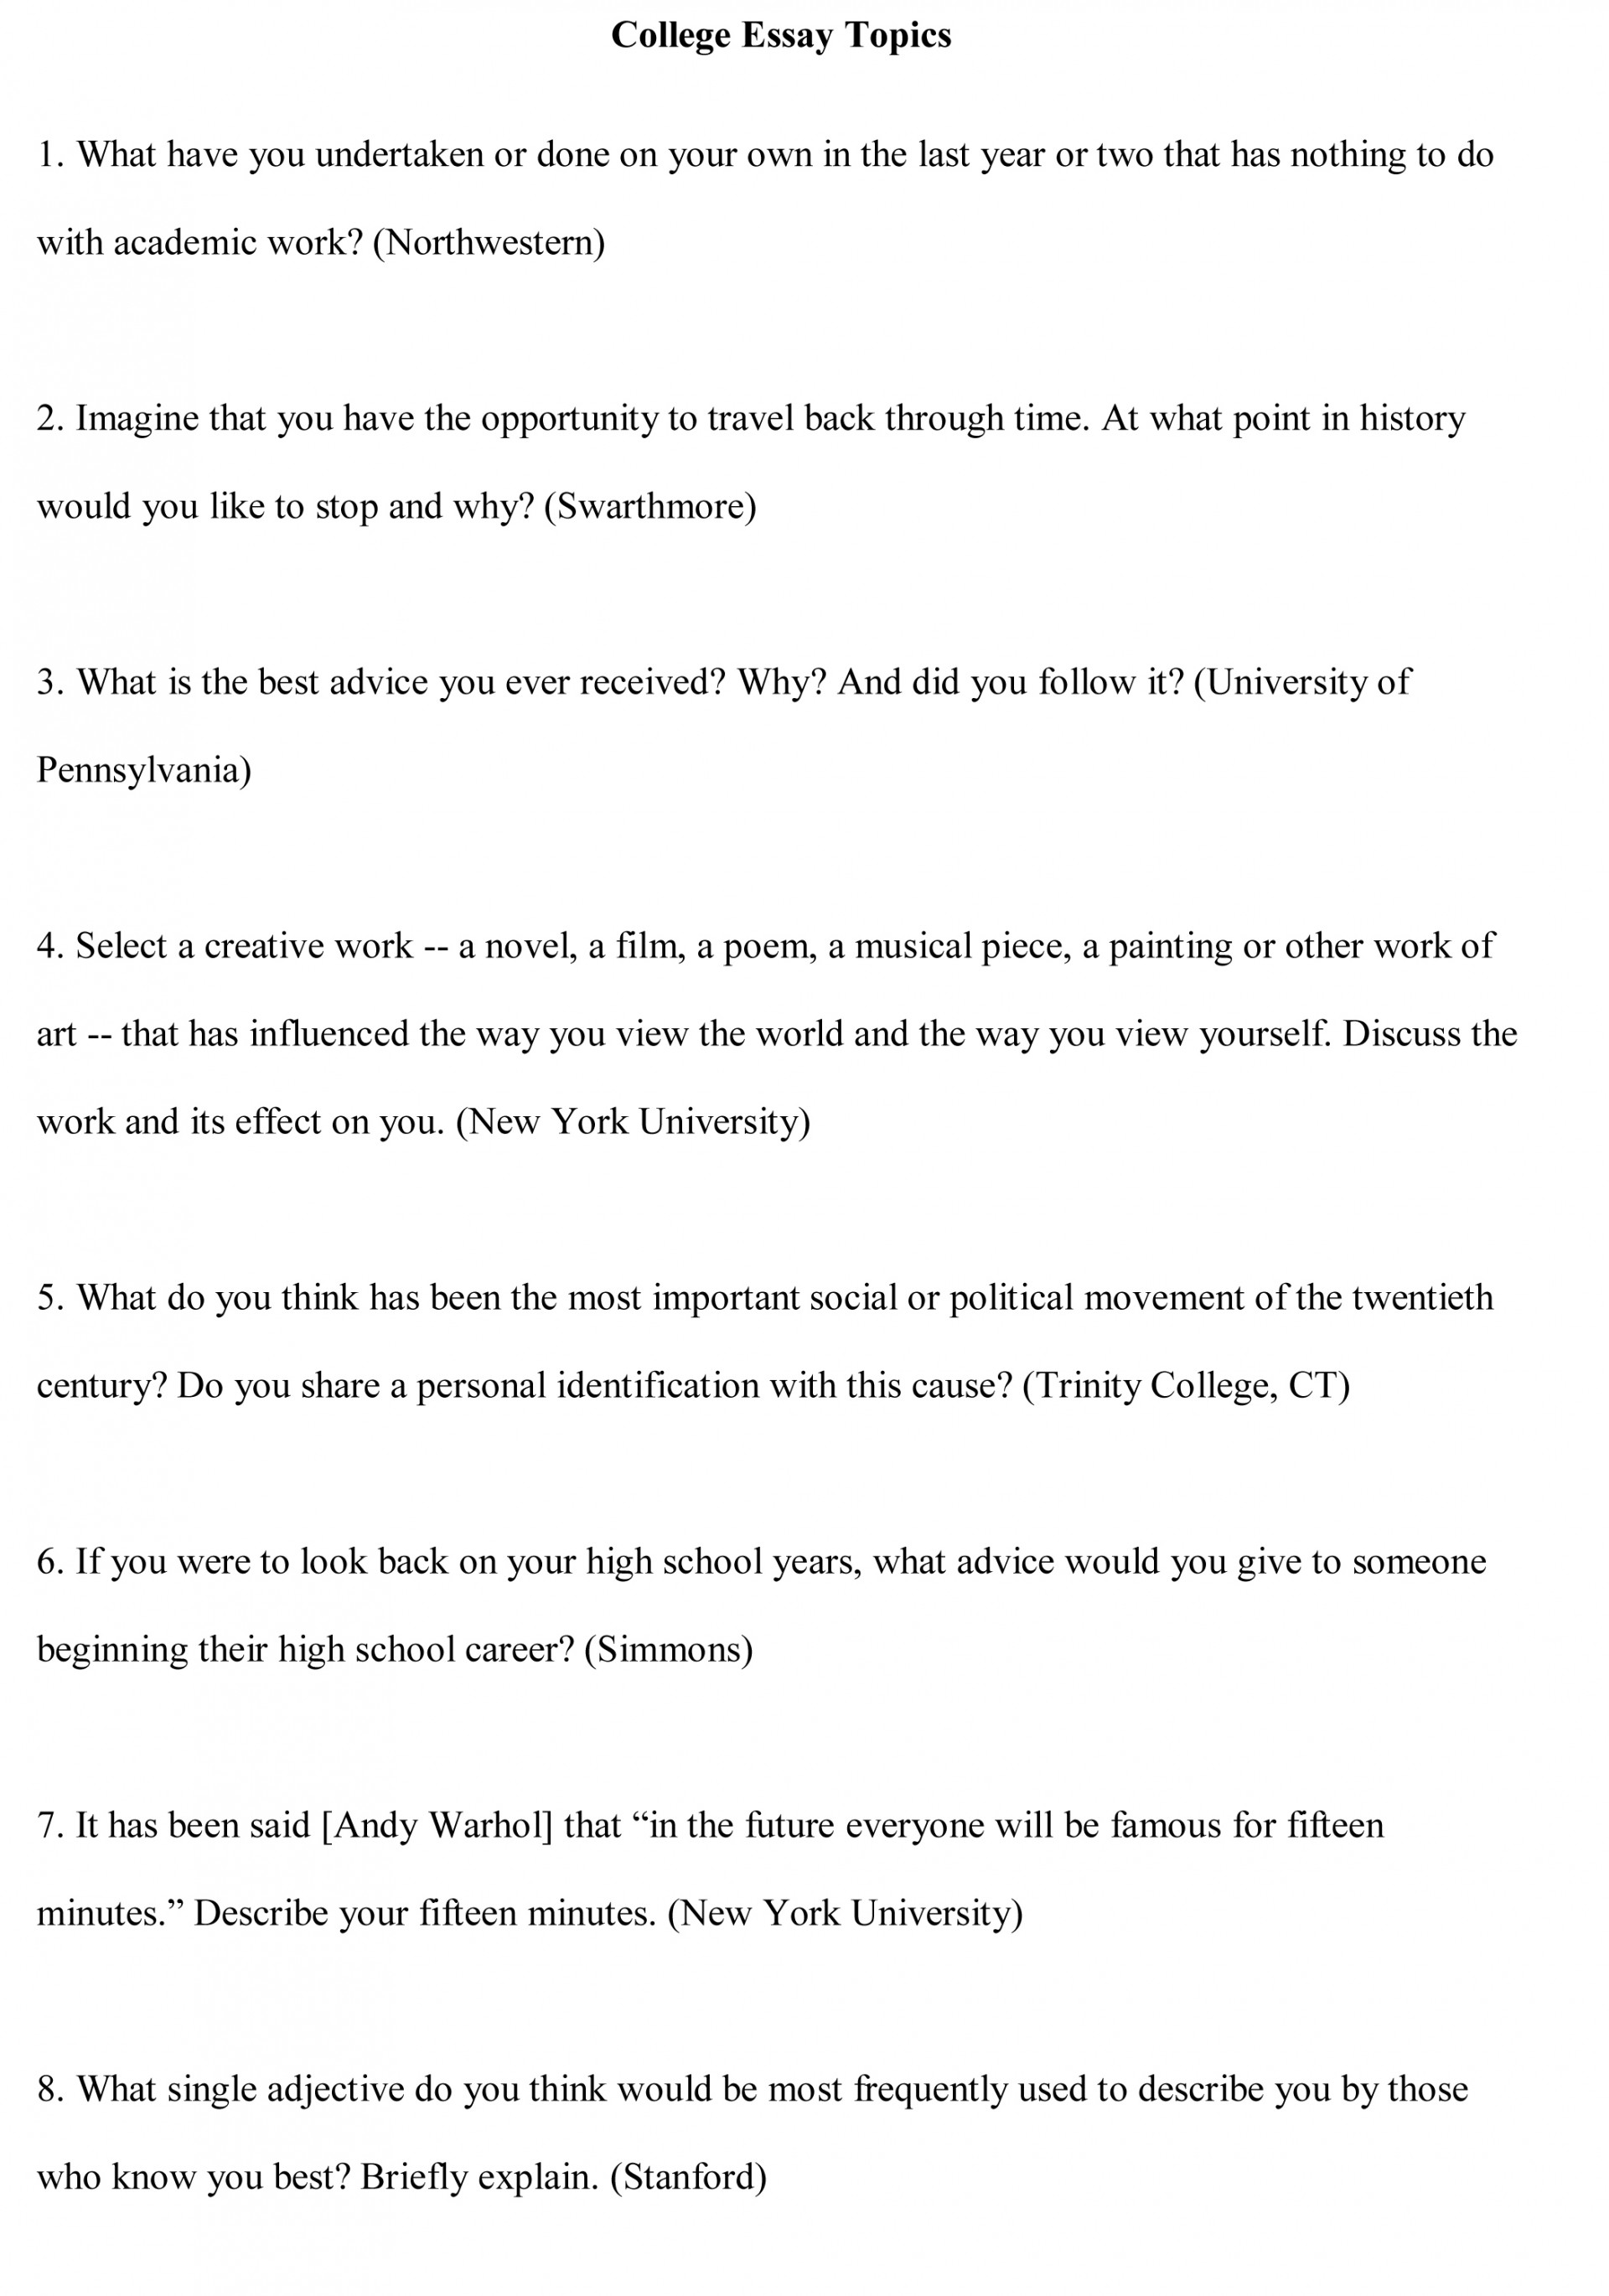 014 Essay Topics College Free Sample1 Archaicawful Writing For 6th Graders List Ielts Prompts 5th 1920